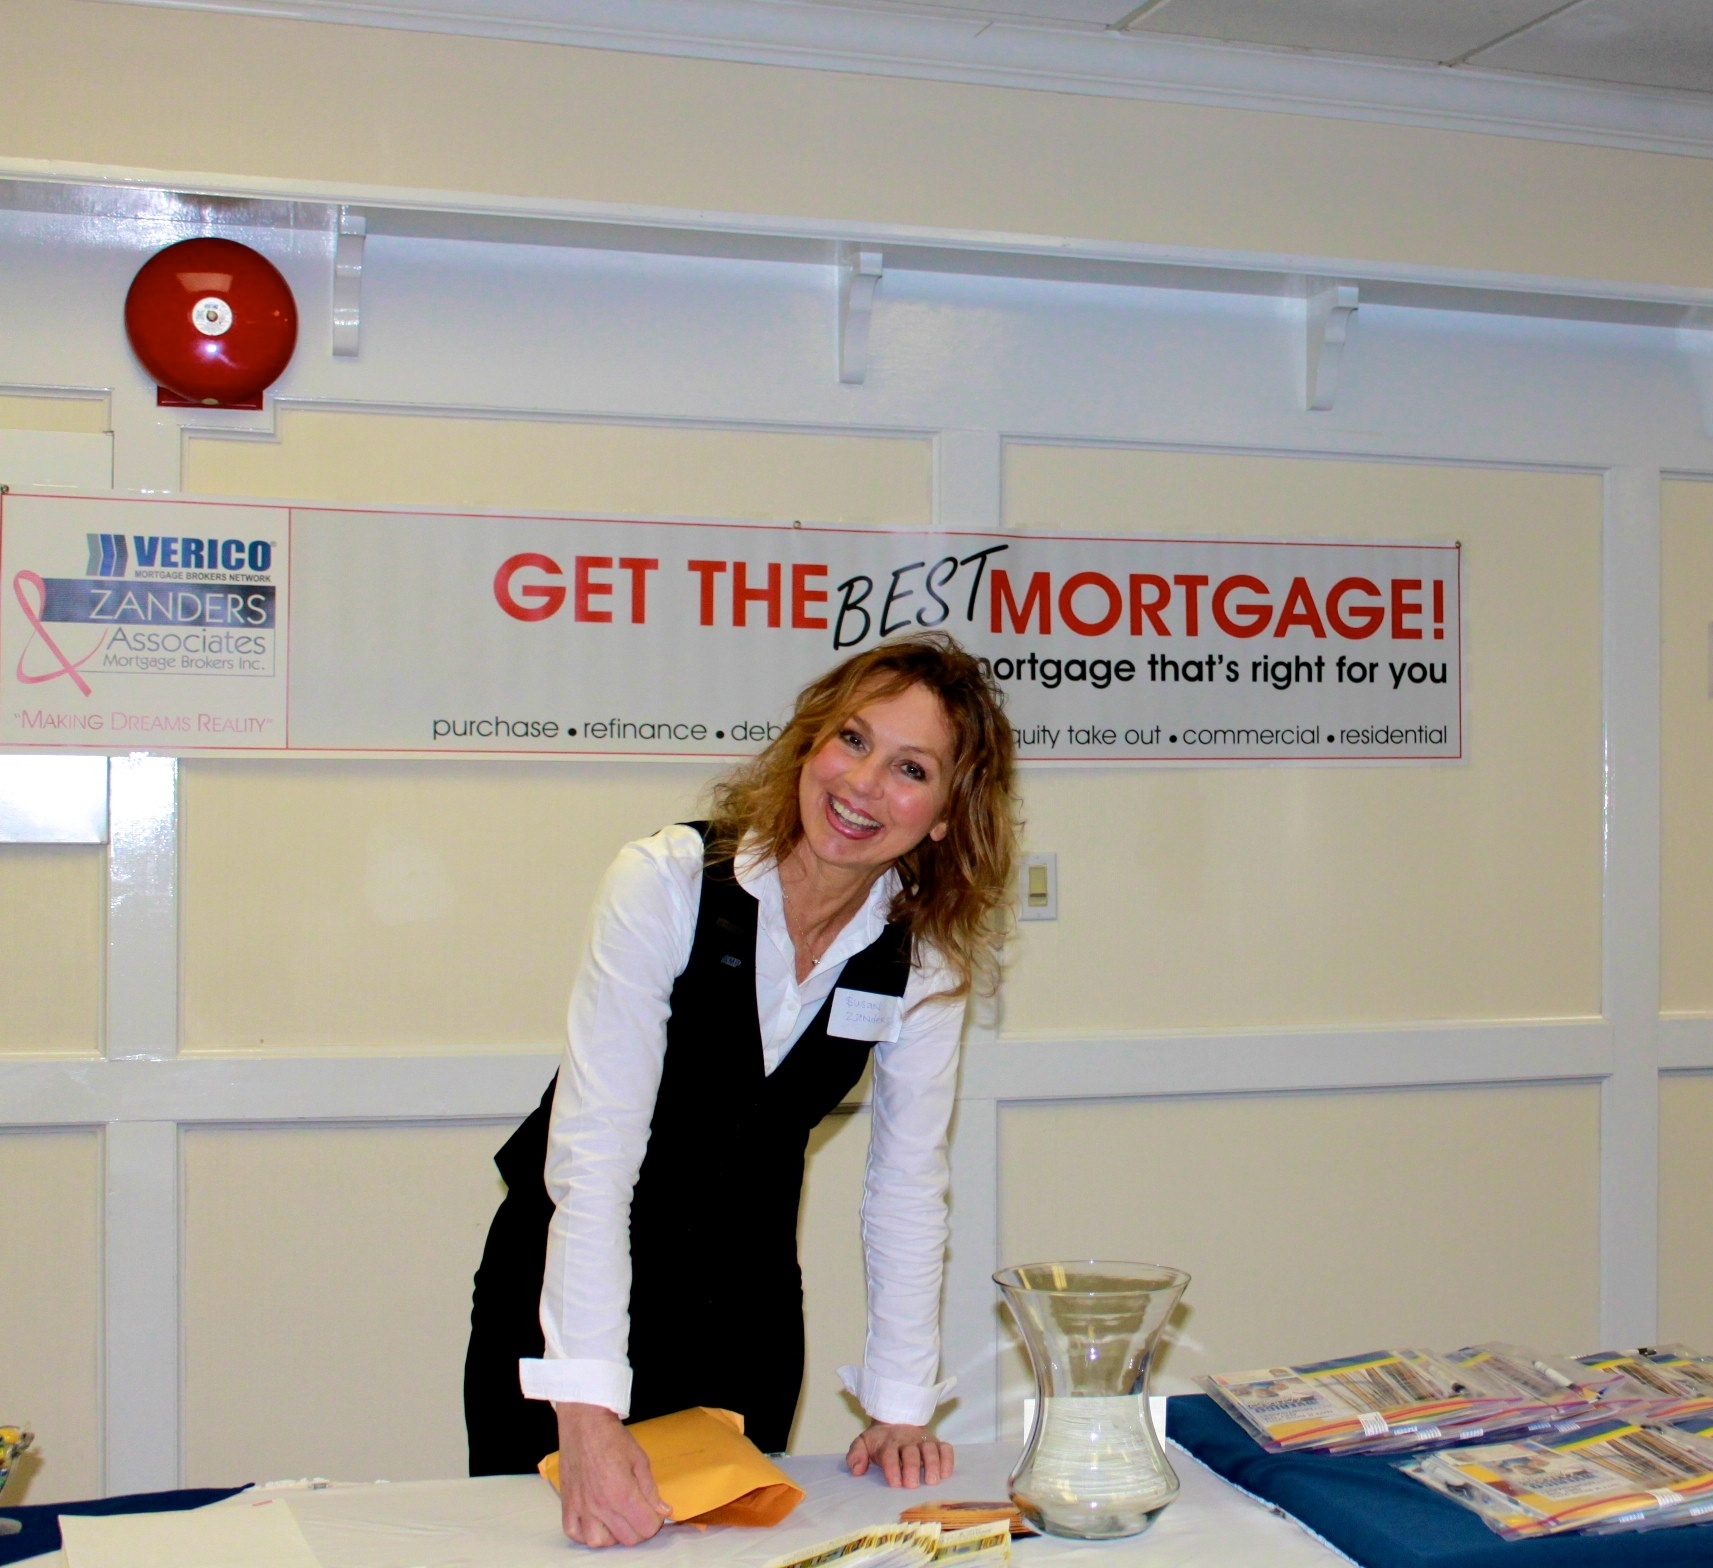 Zanders & Associates Mortgage Brokers Inc. fifth image